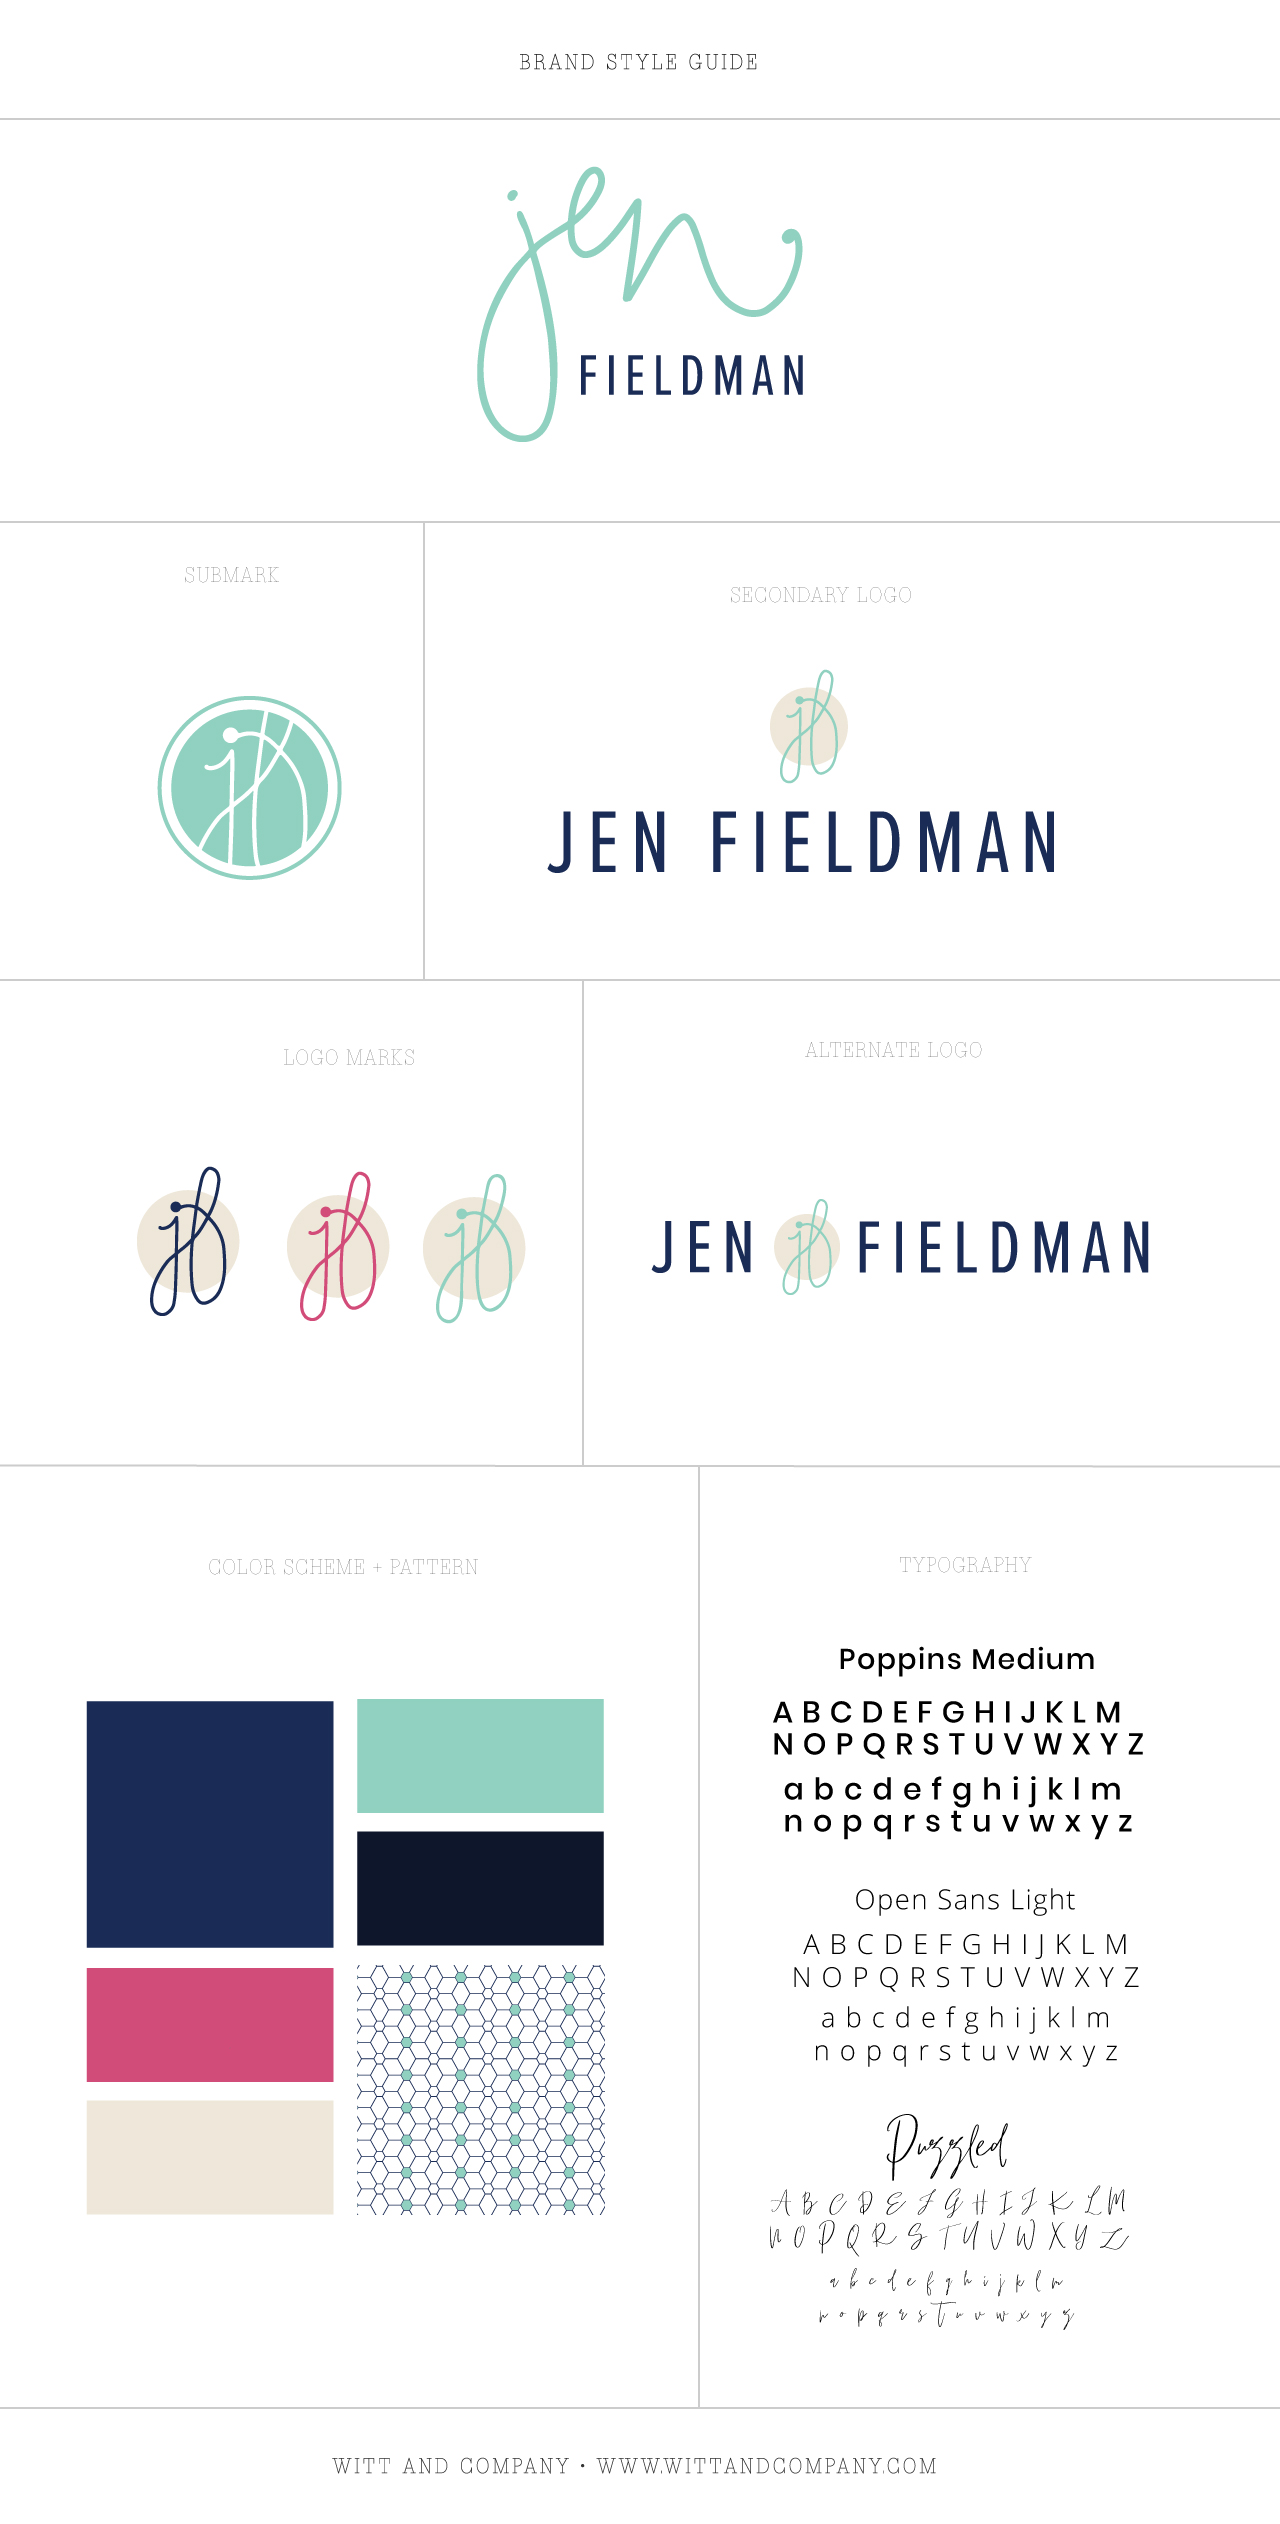 Brand Reveal for Jen Fieldman, Marketing Strategist | Witt and Company